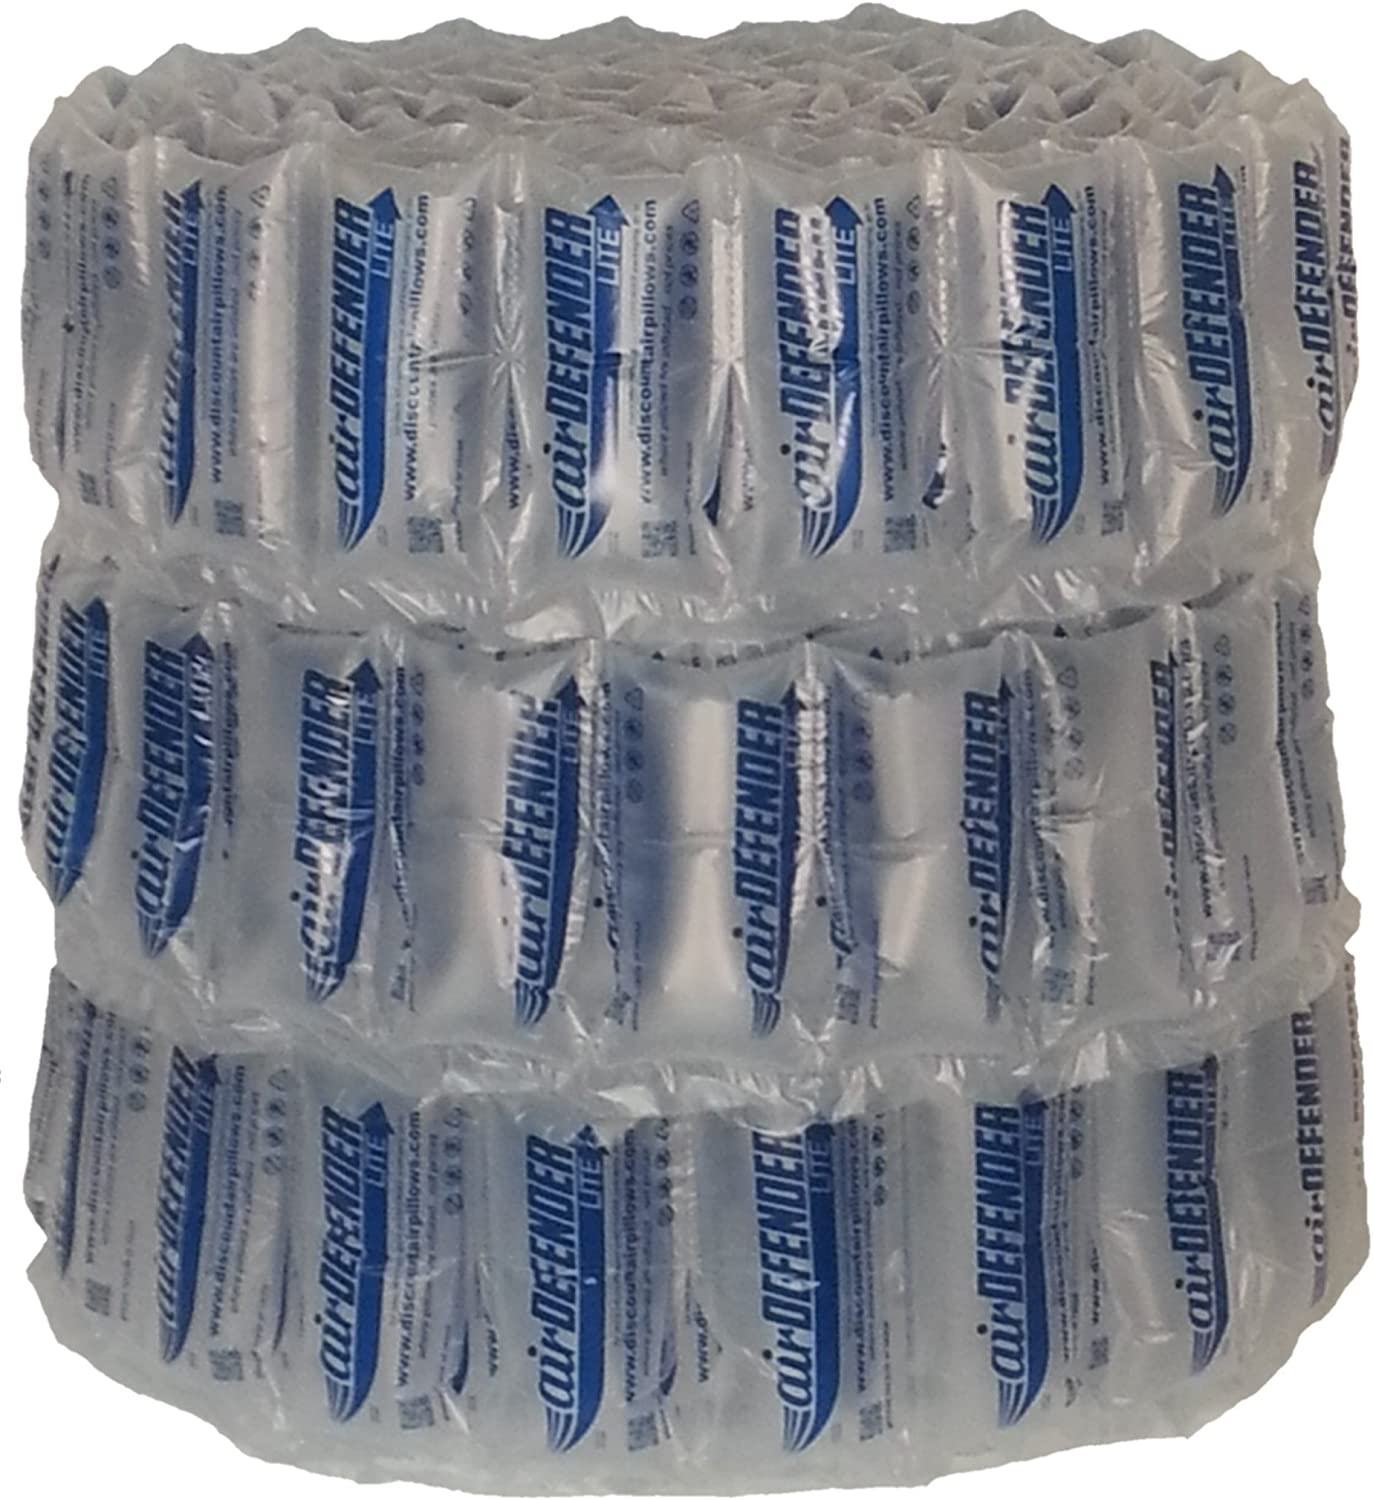 330 Count 4x8 airDEFENDER air Pillows 40 Gallon 5.33 Cubic feet Void Fill Cushioning Shipping Packing Package : Office Products